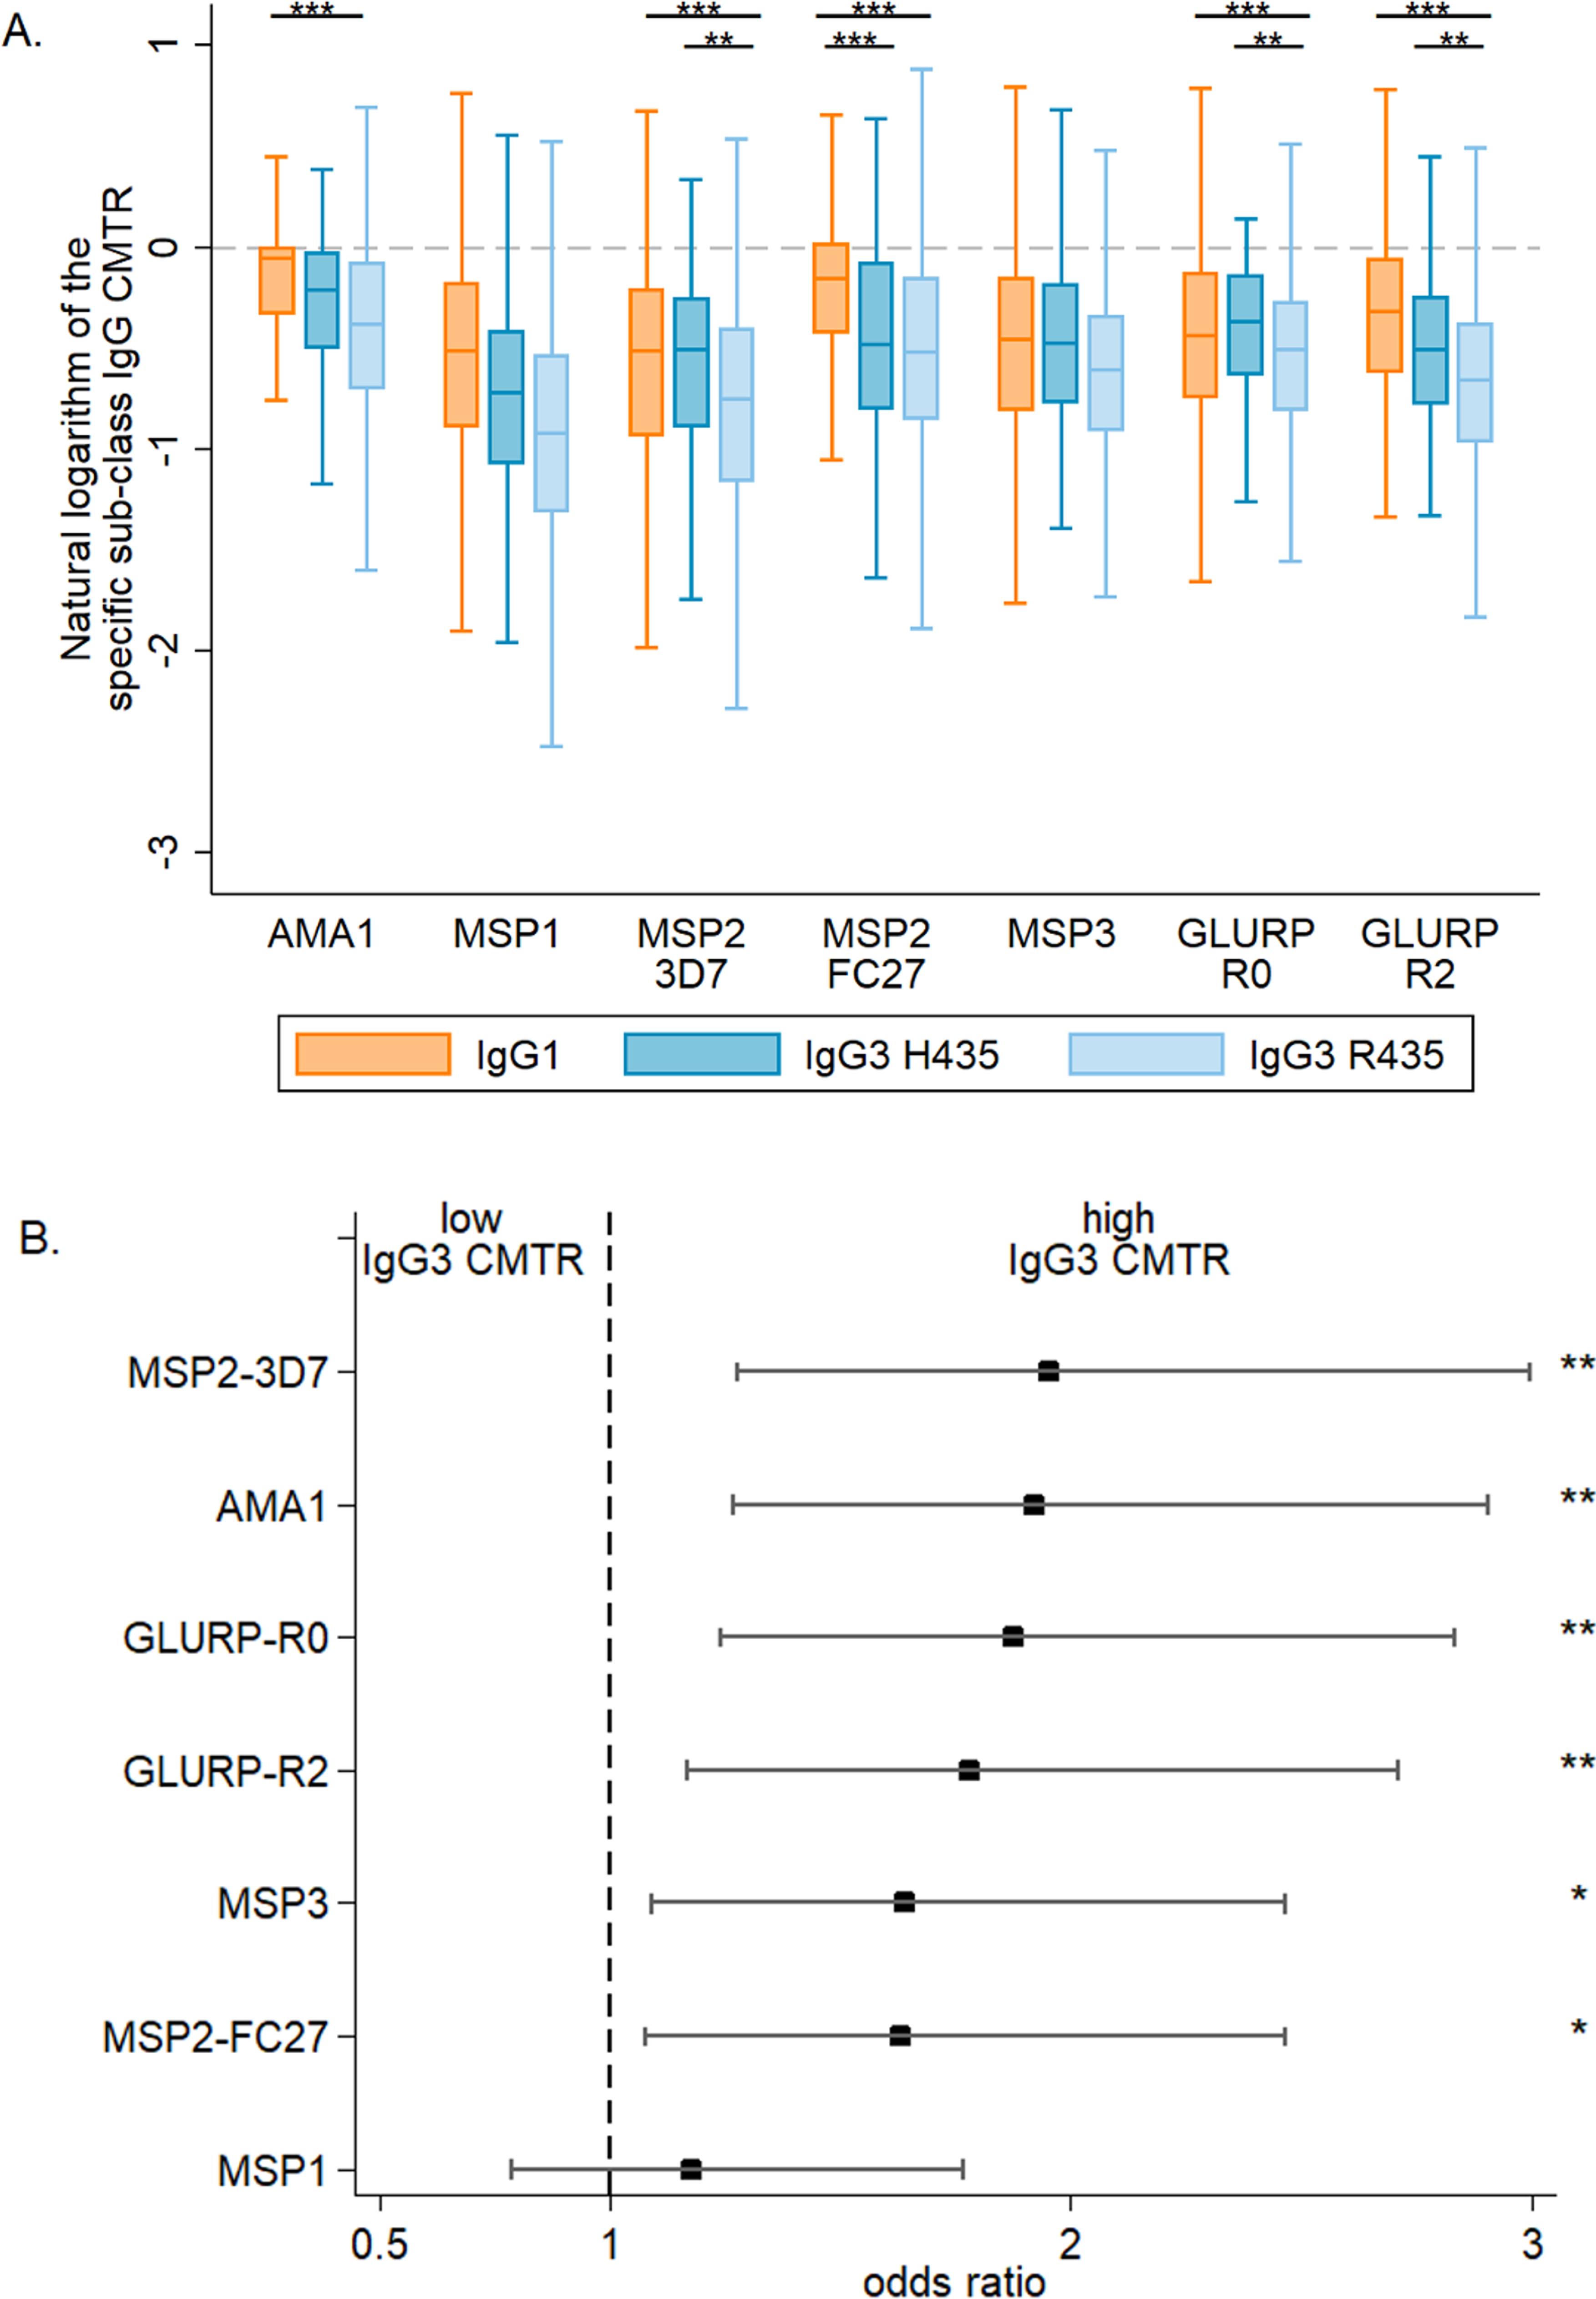 The cord-to-mother transfer ratio of malaria-specific IgG1, IgG3-R435, and IgG3-H435.